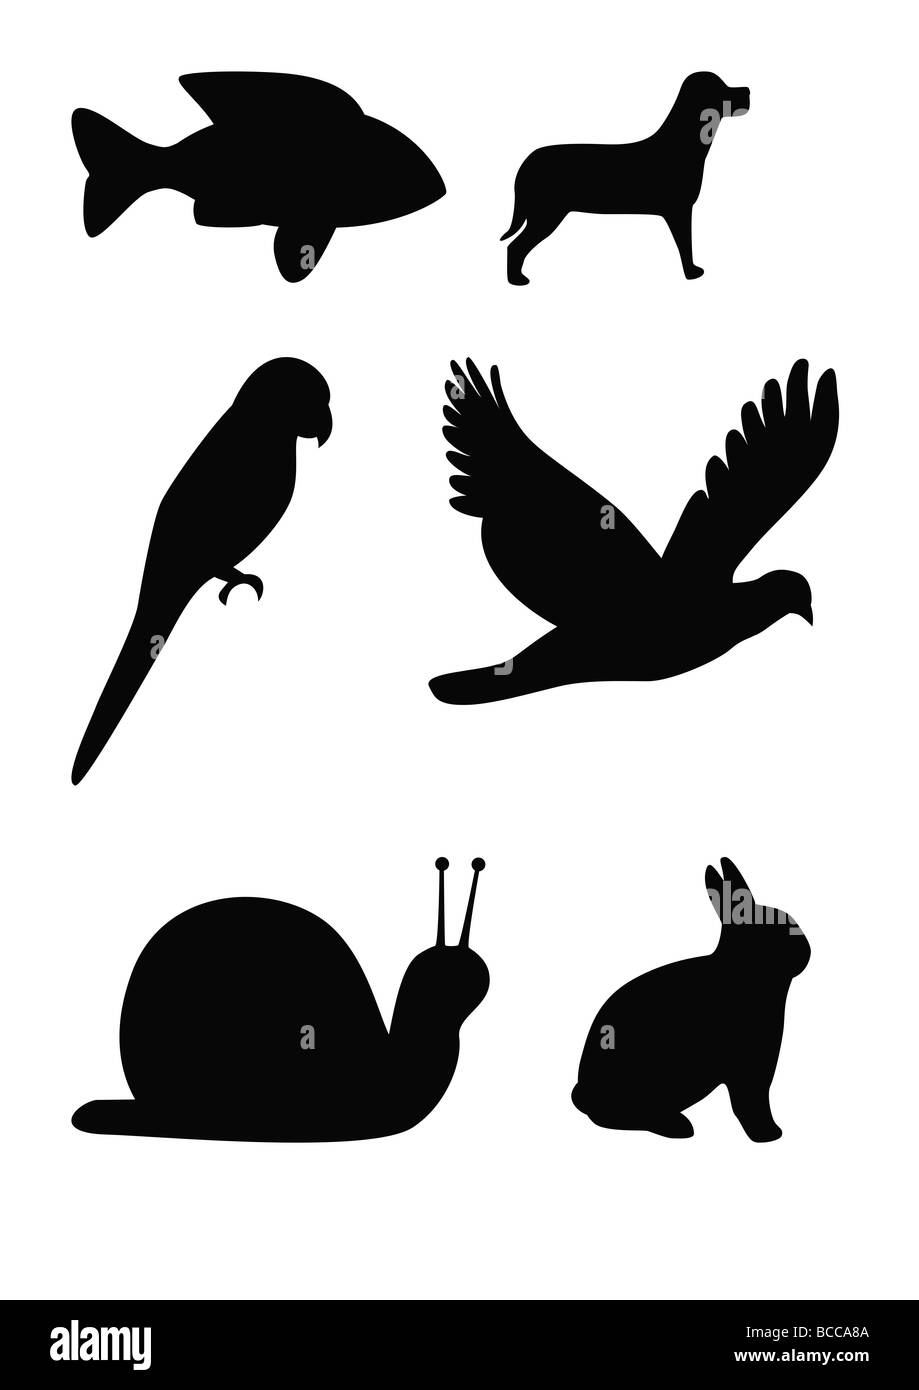 Set of animal silhouettes fish flying bird parrot snail dog and rabbit - Stock Image